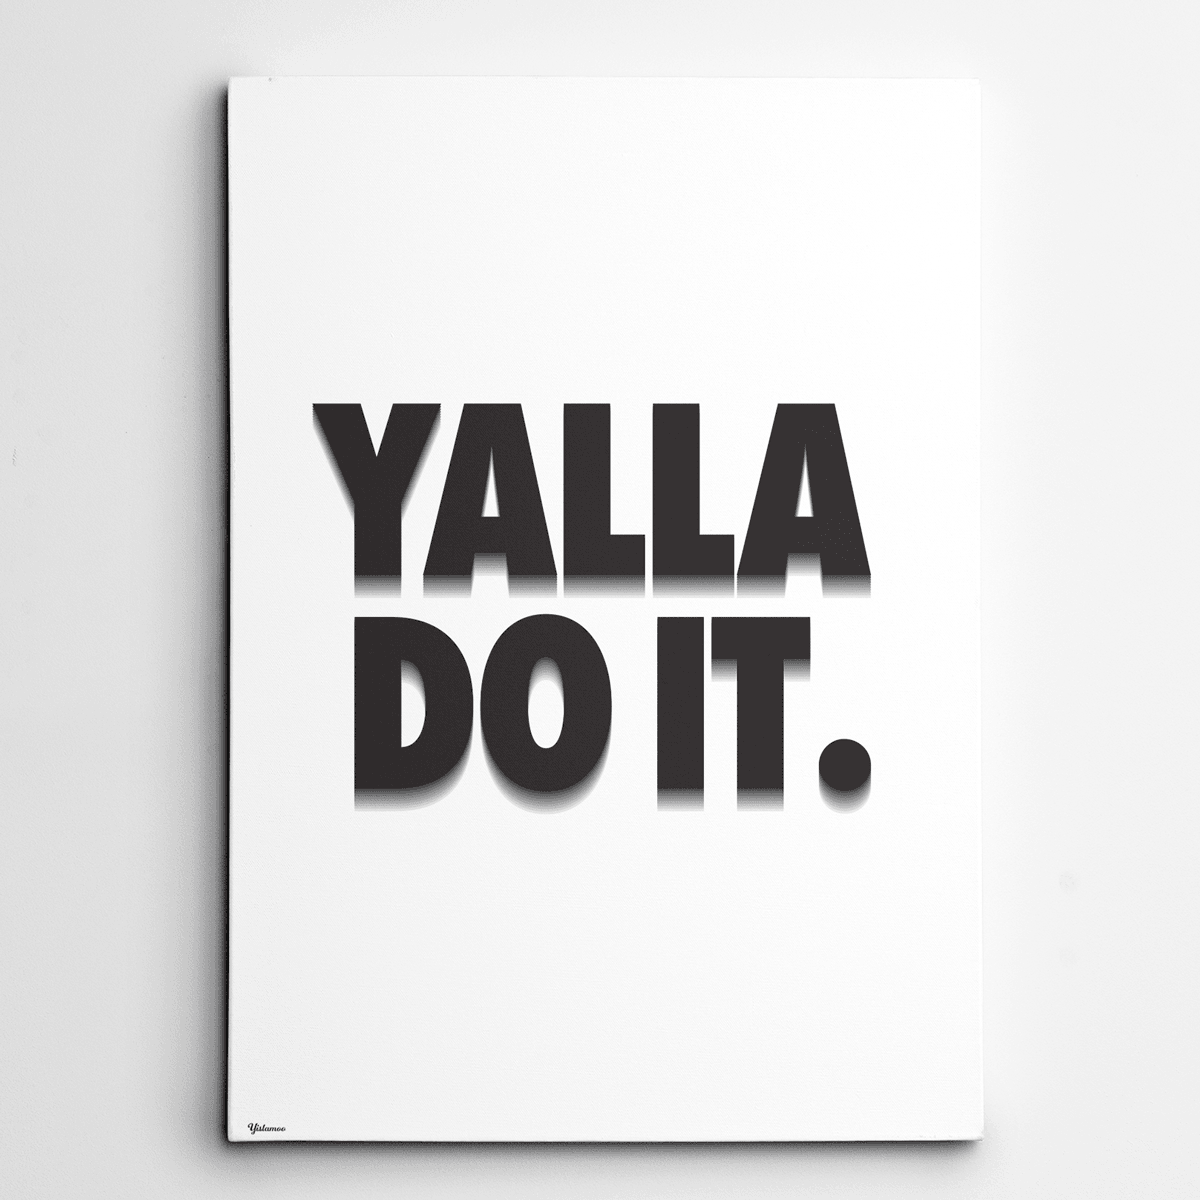 framed motivational posters for office,Yalla,Yislamoo